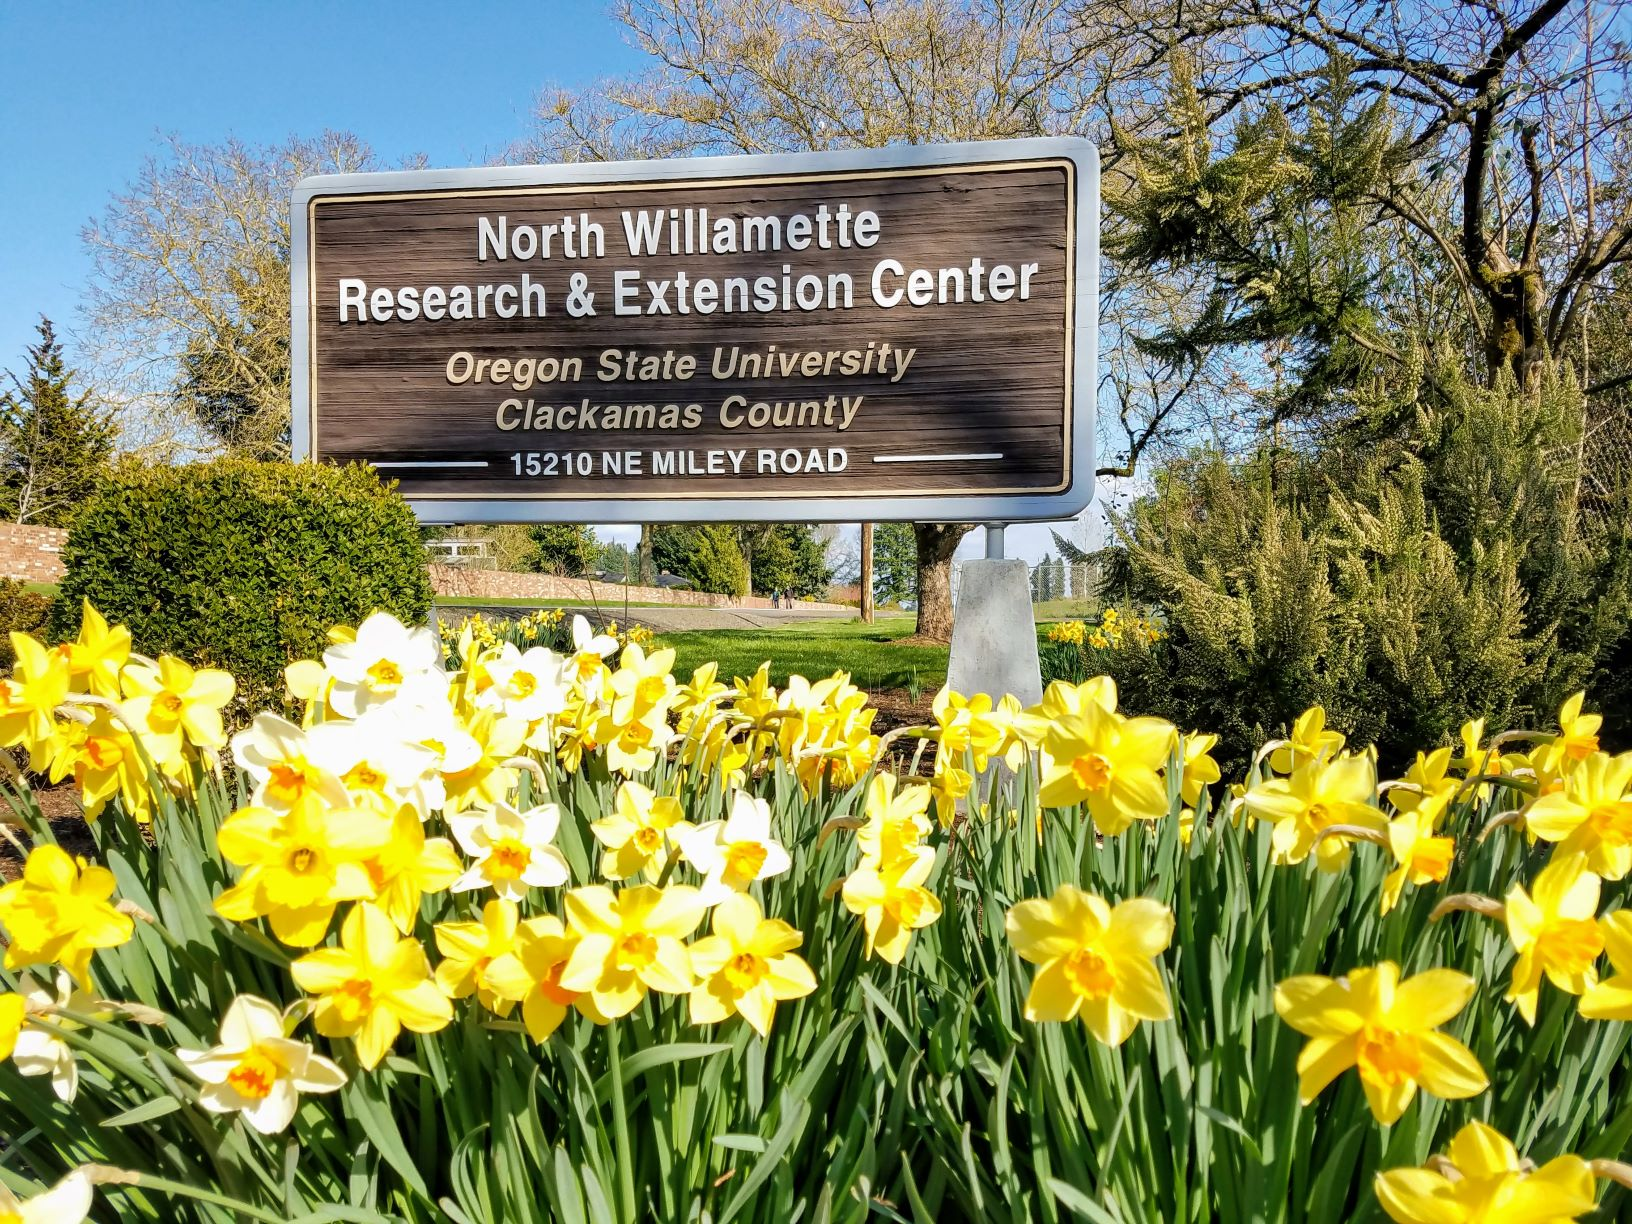 Entrance sign to NWREC